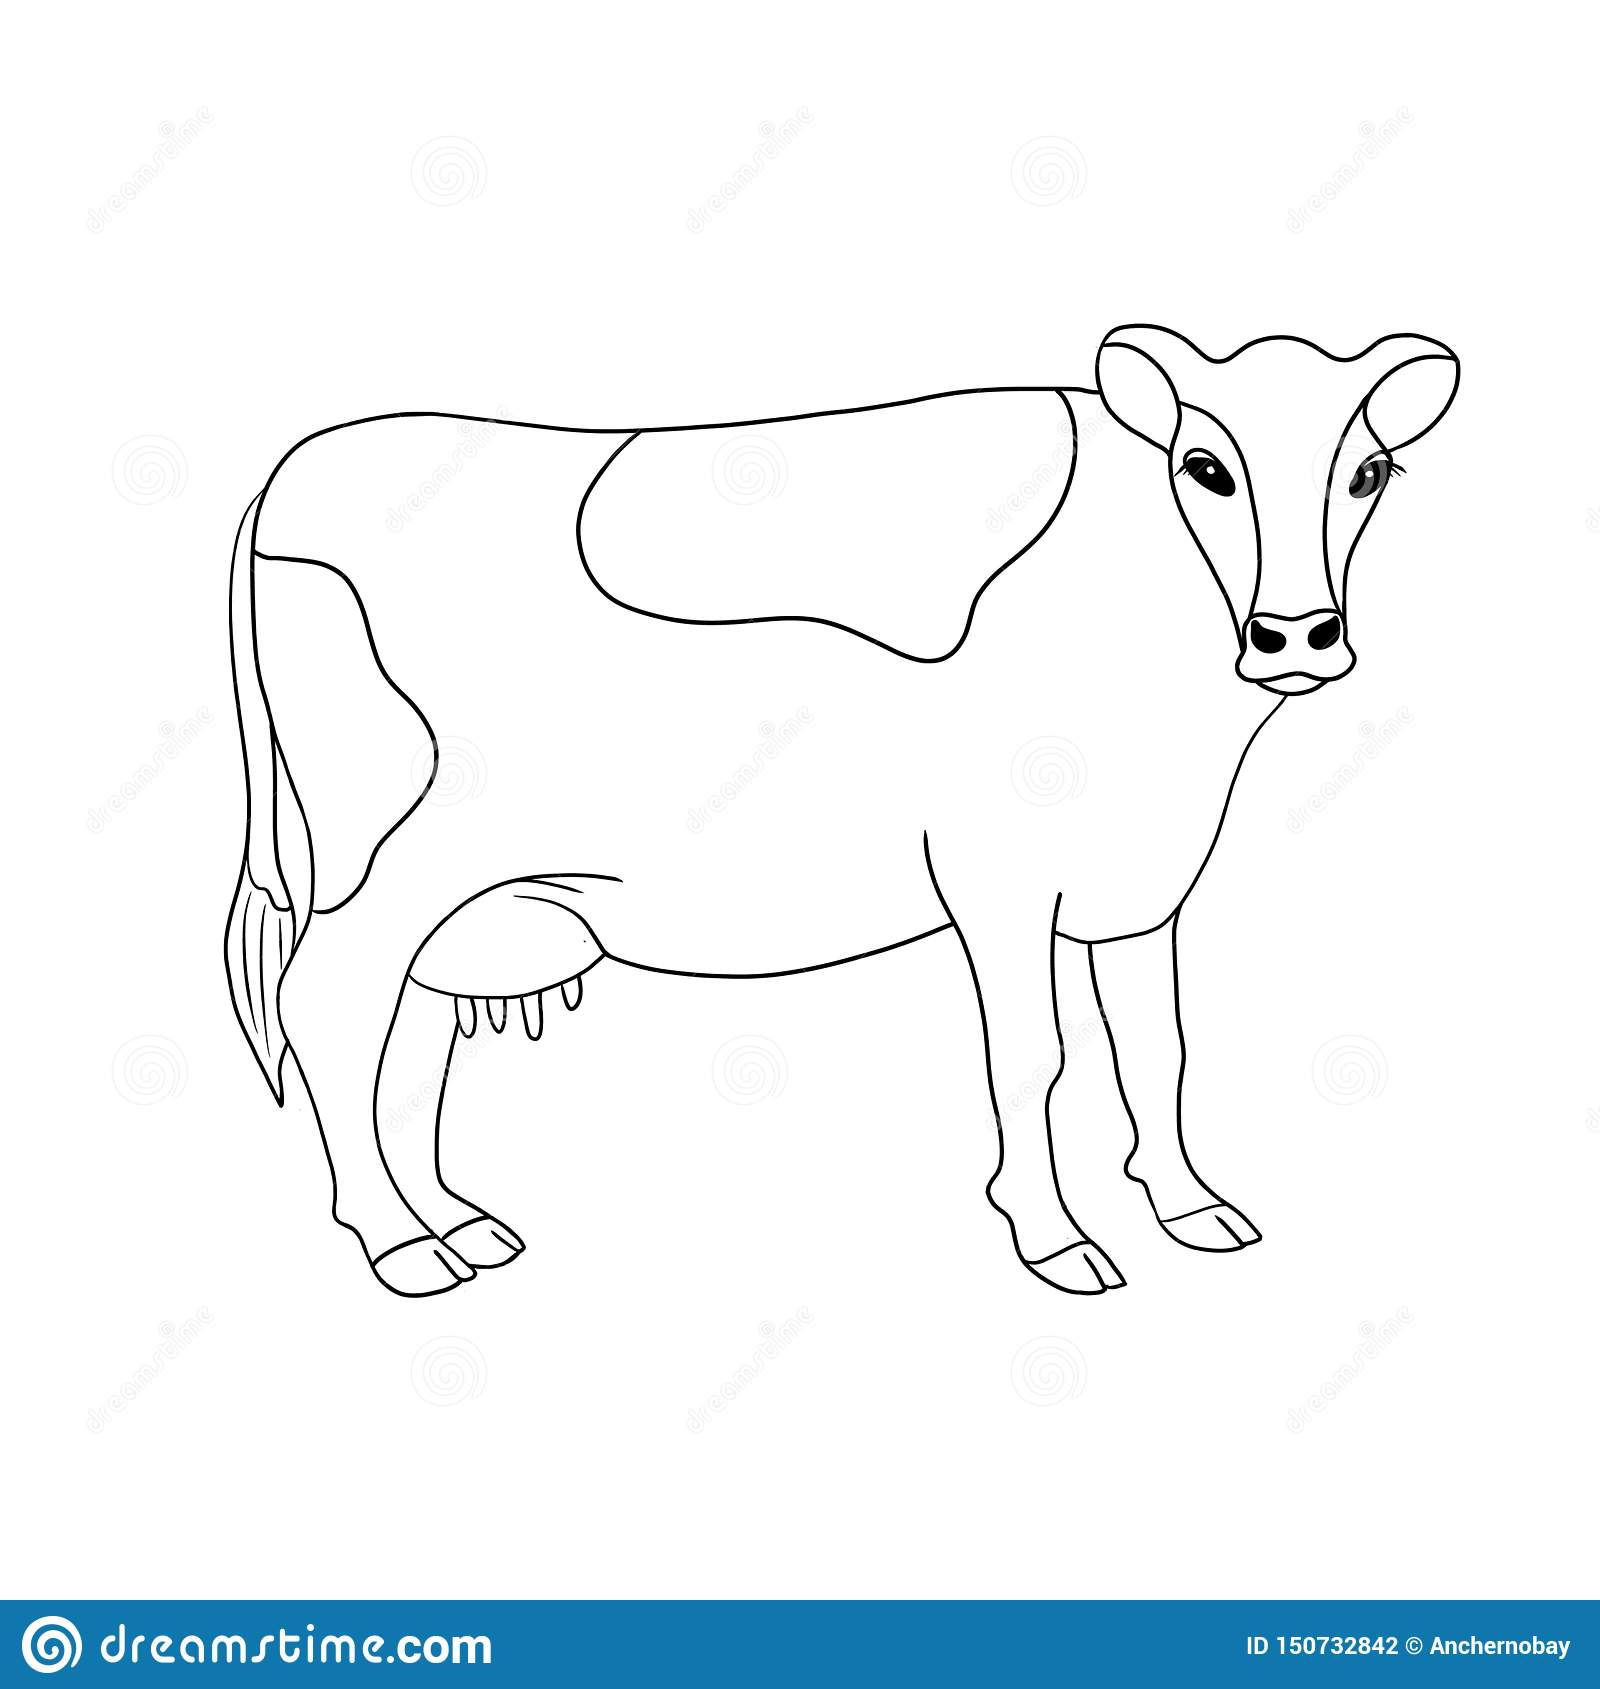 Line art farm animal cow hand drawn illustration isolated on white background